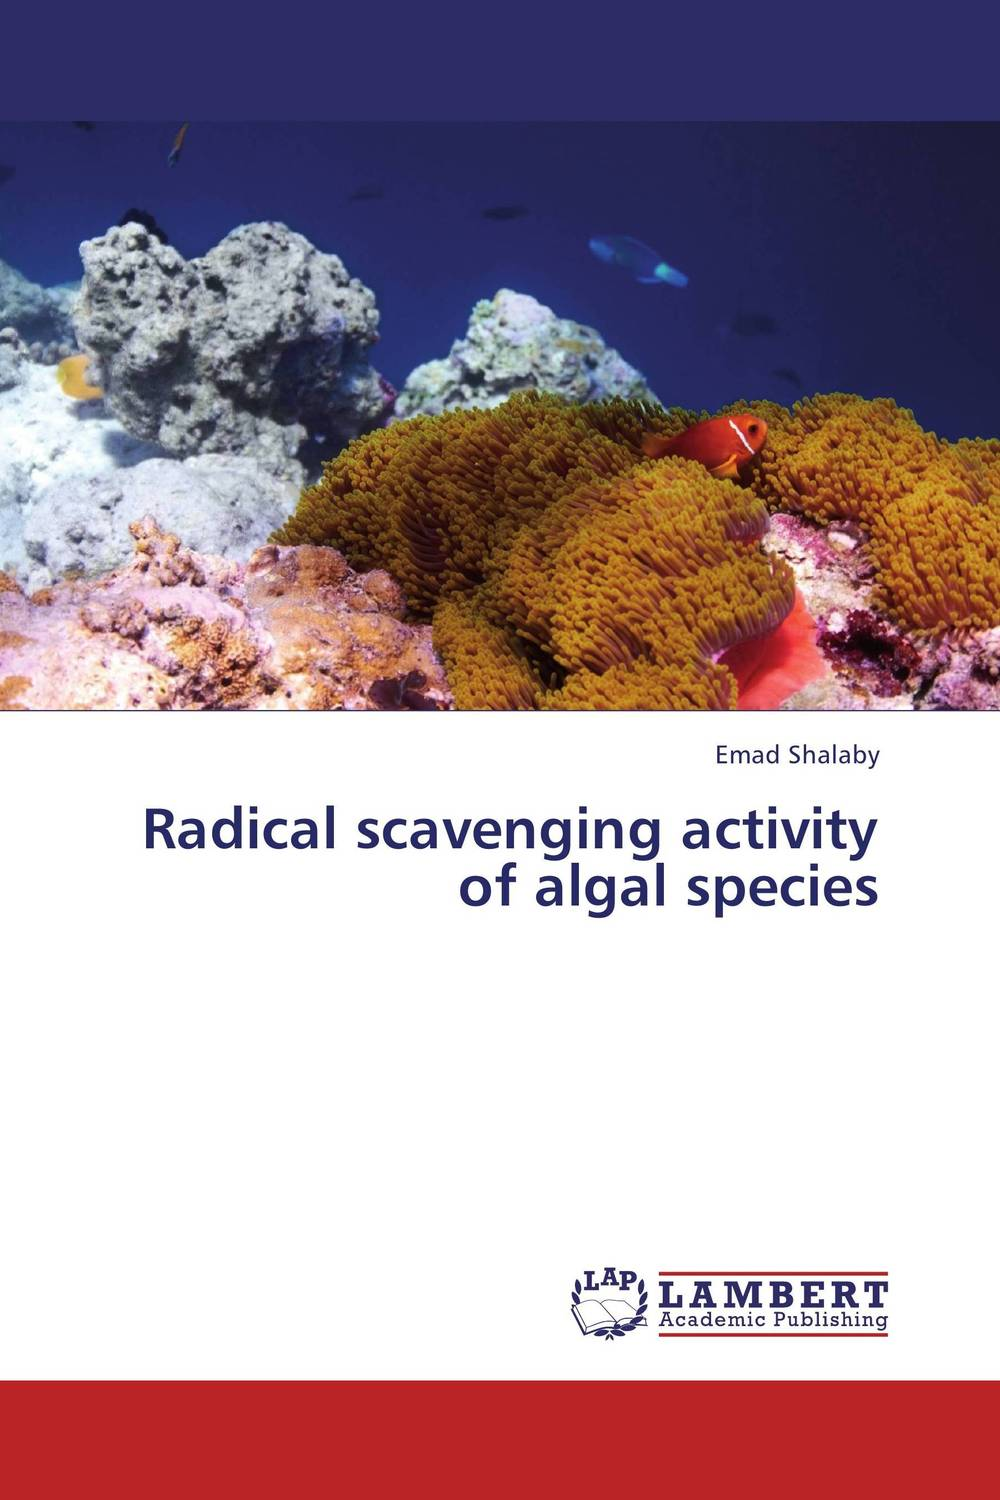 Radical scavenging activity of algal species duncan bruce the dream cafe lessons in the art of radical innovation